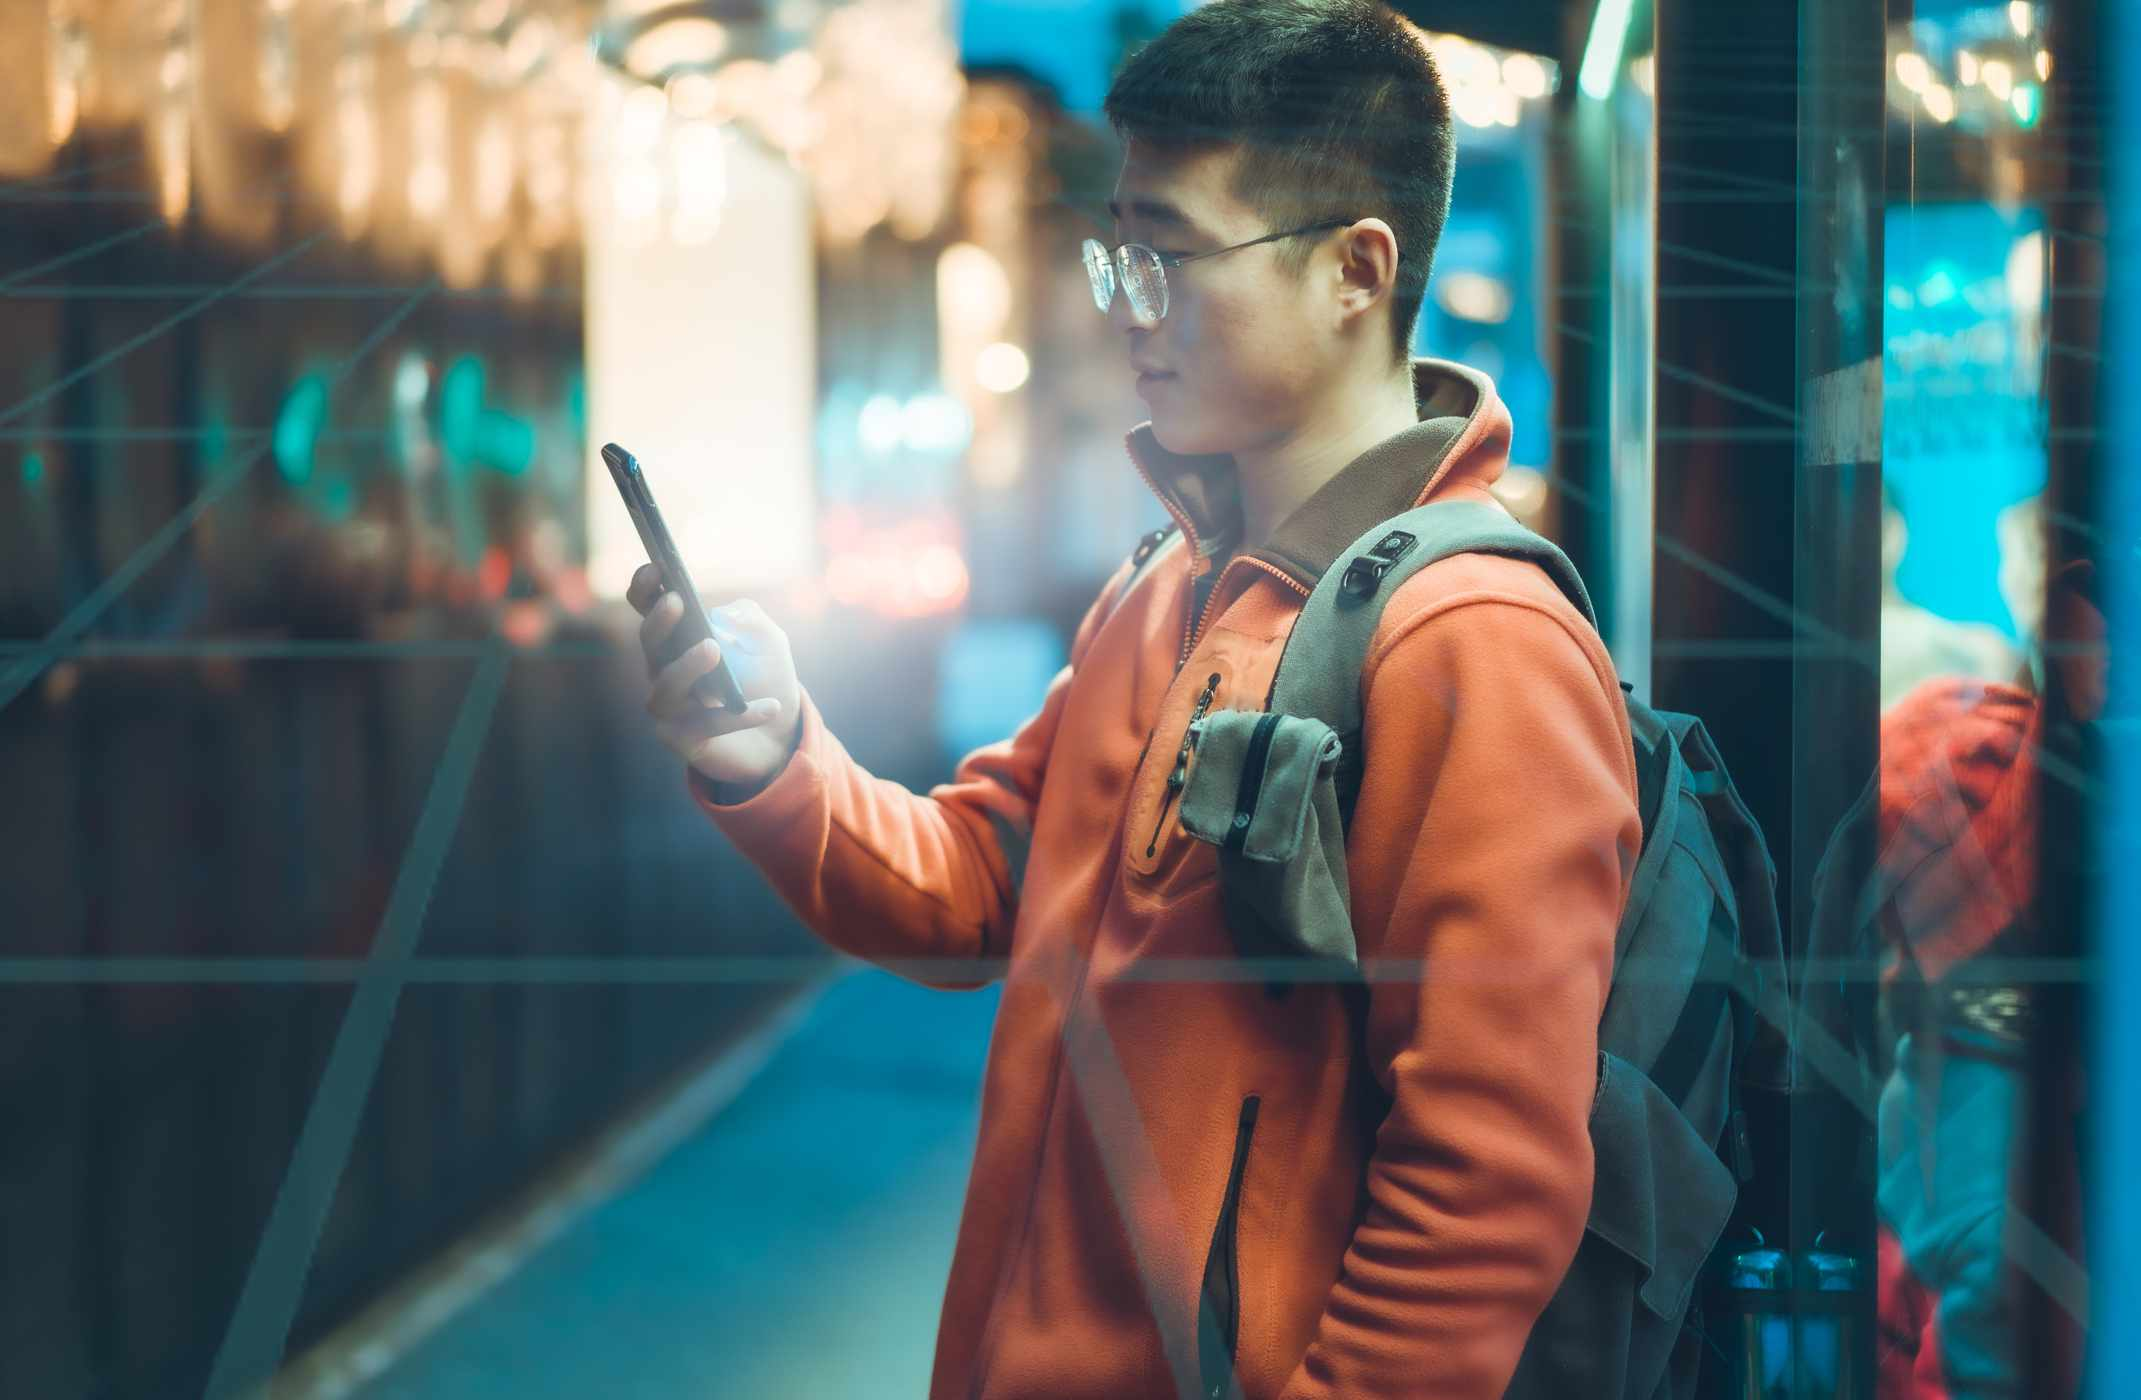 Someone using a smartphone outdoors in a city setting with a grid overlaying the image.